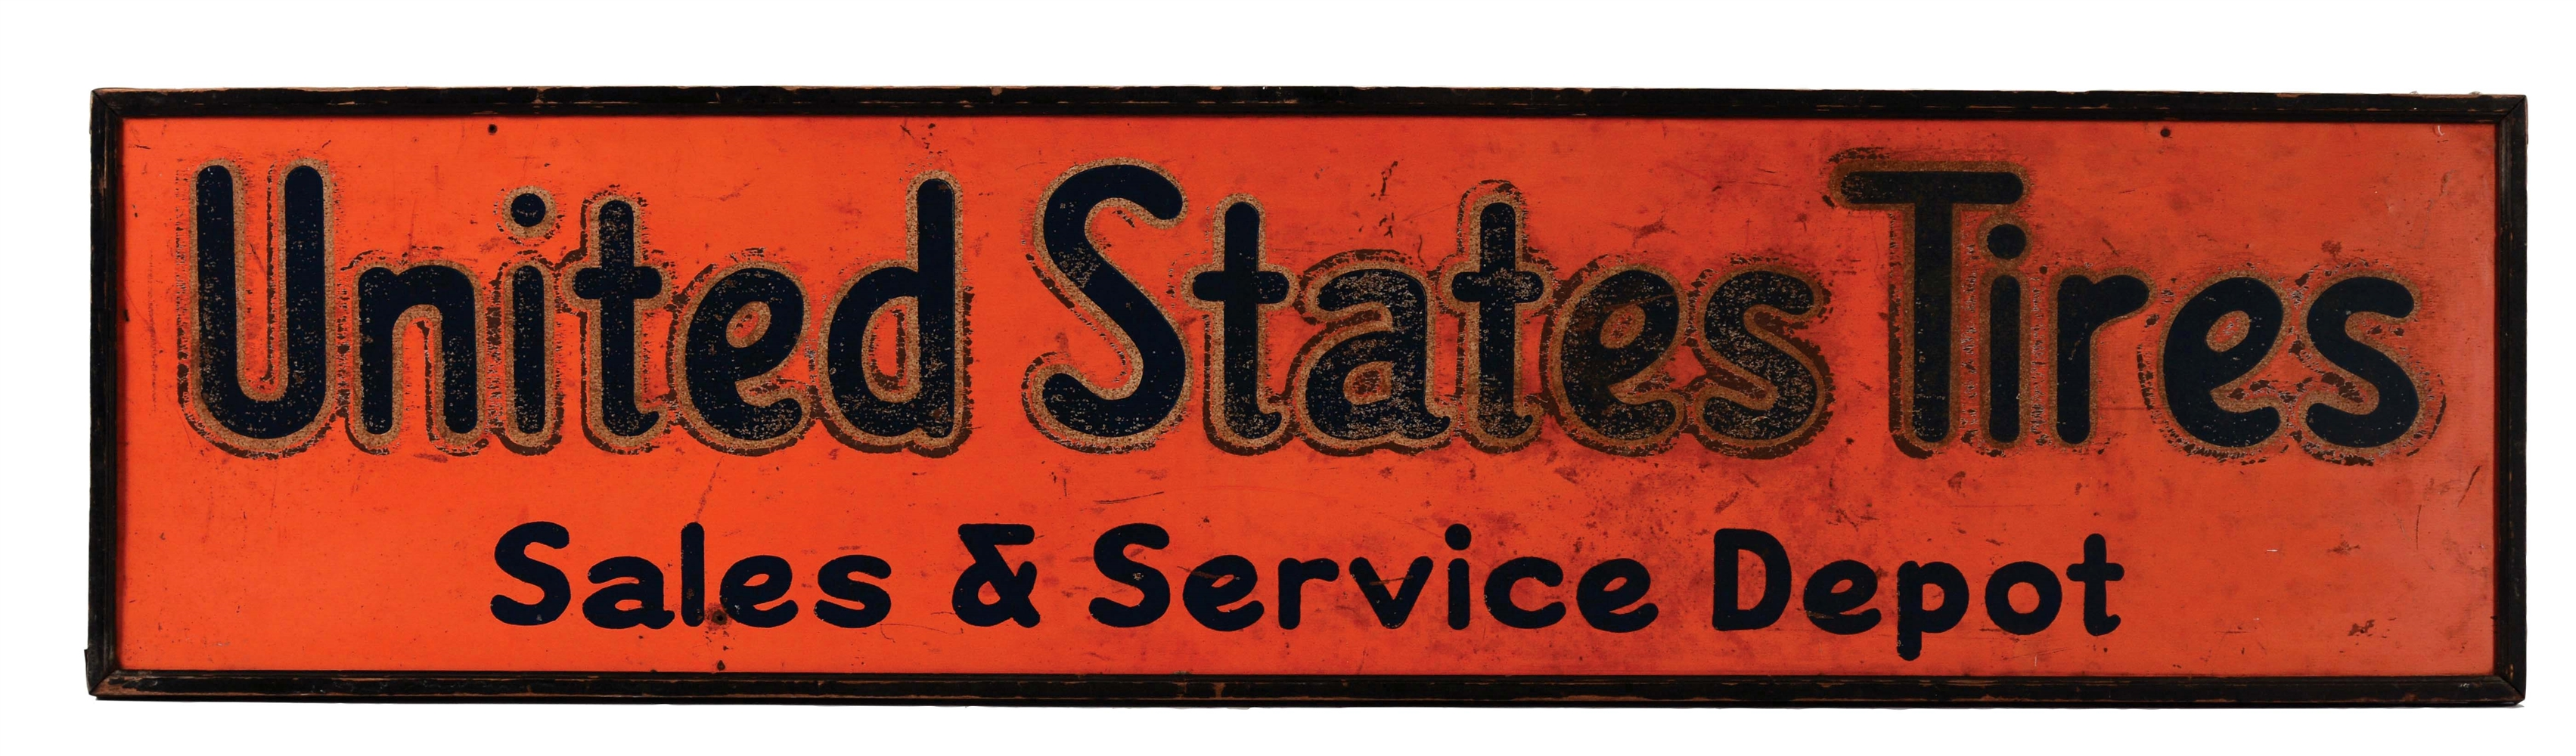 United States Tires Sales & Service Depot Tin Sign with Original Wood Frame.